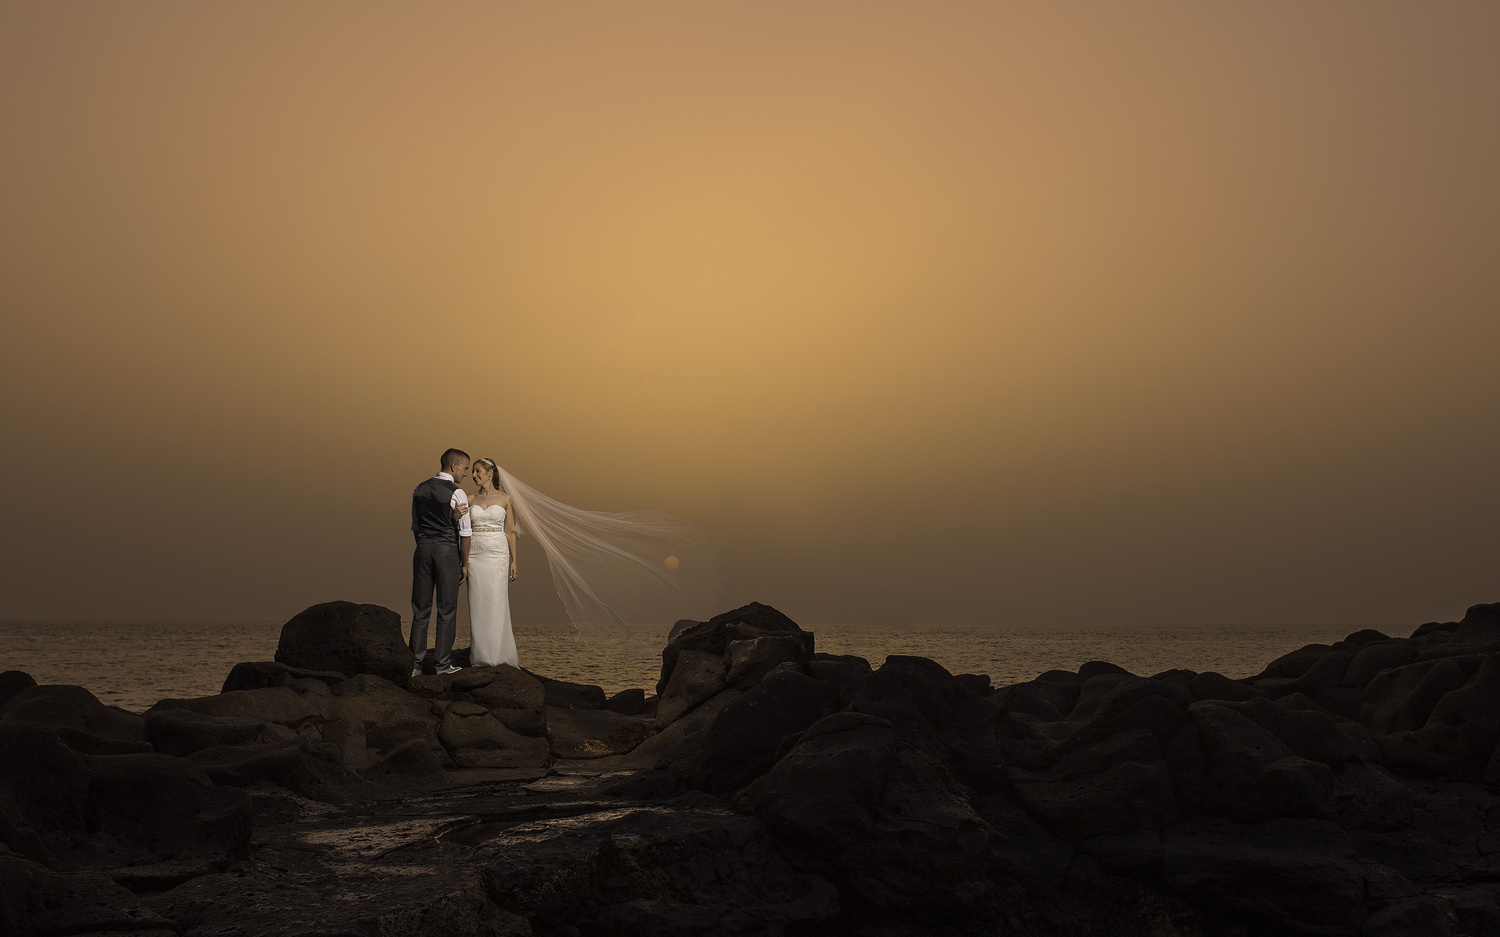 Wedding Sunset by David O Sullivan